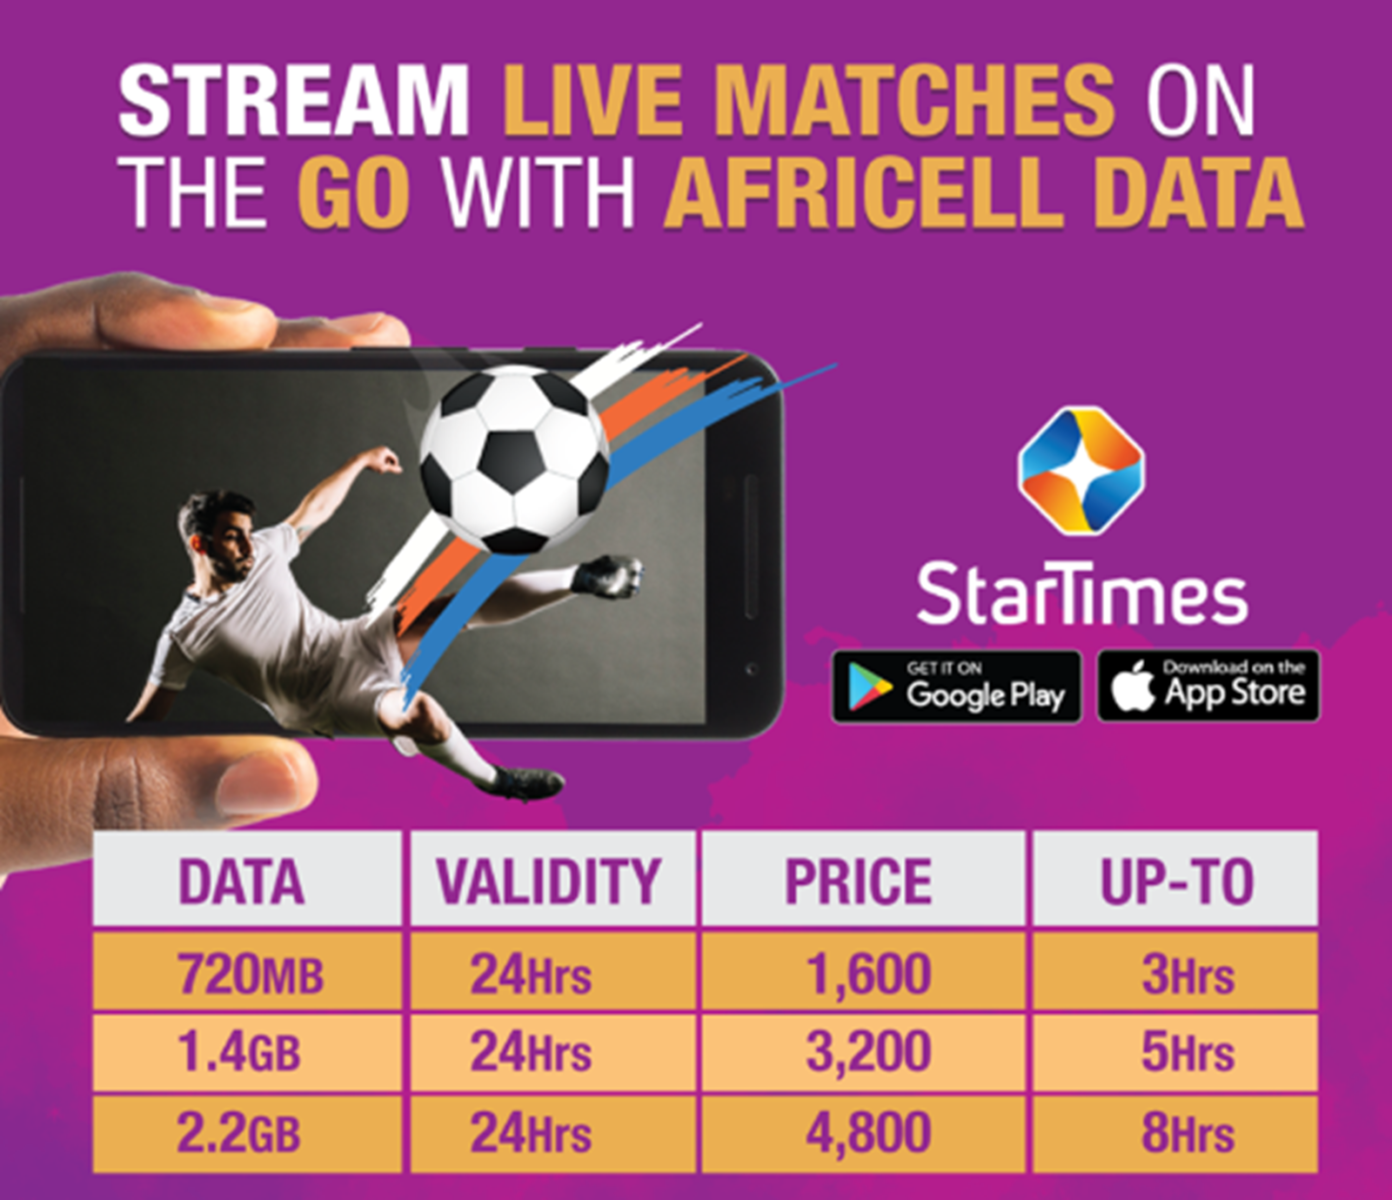 Africell & Star Times Bring the World Cup to your phone with